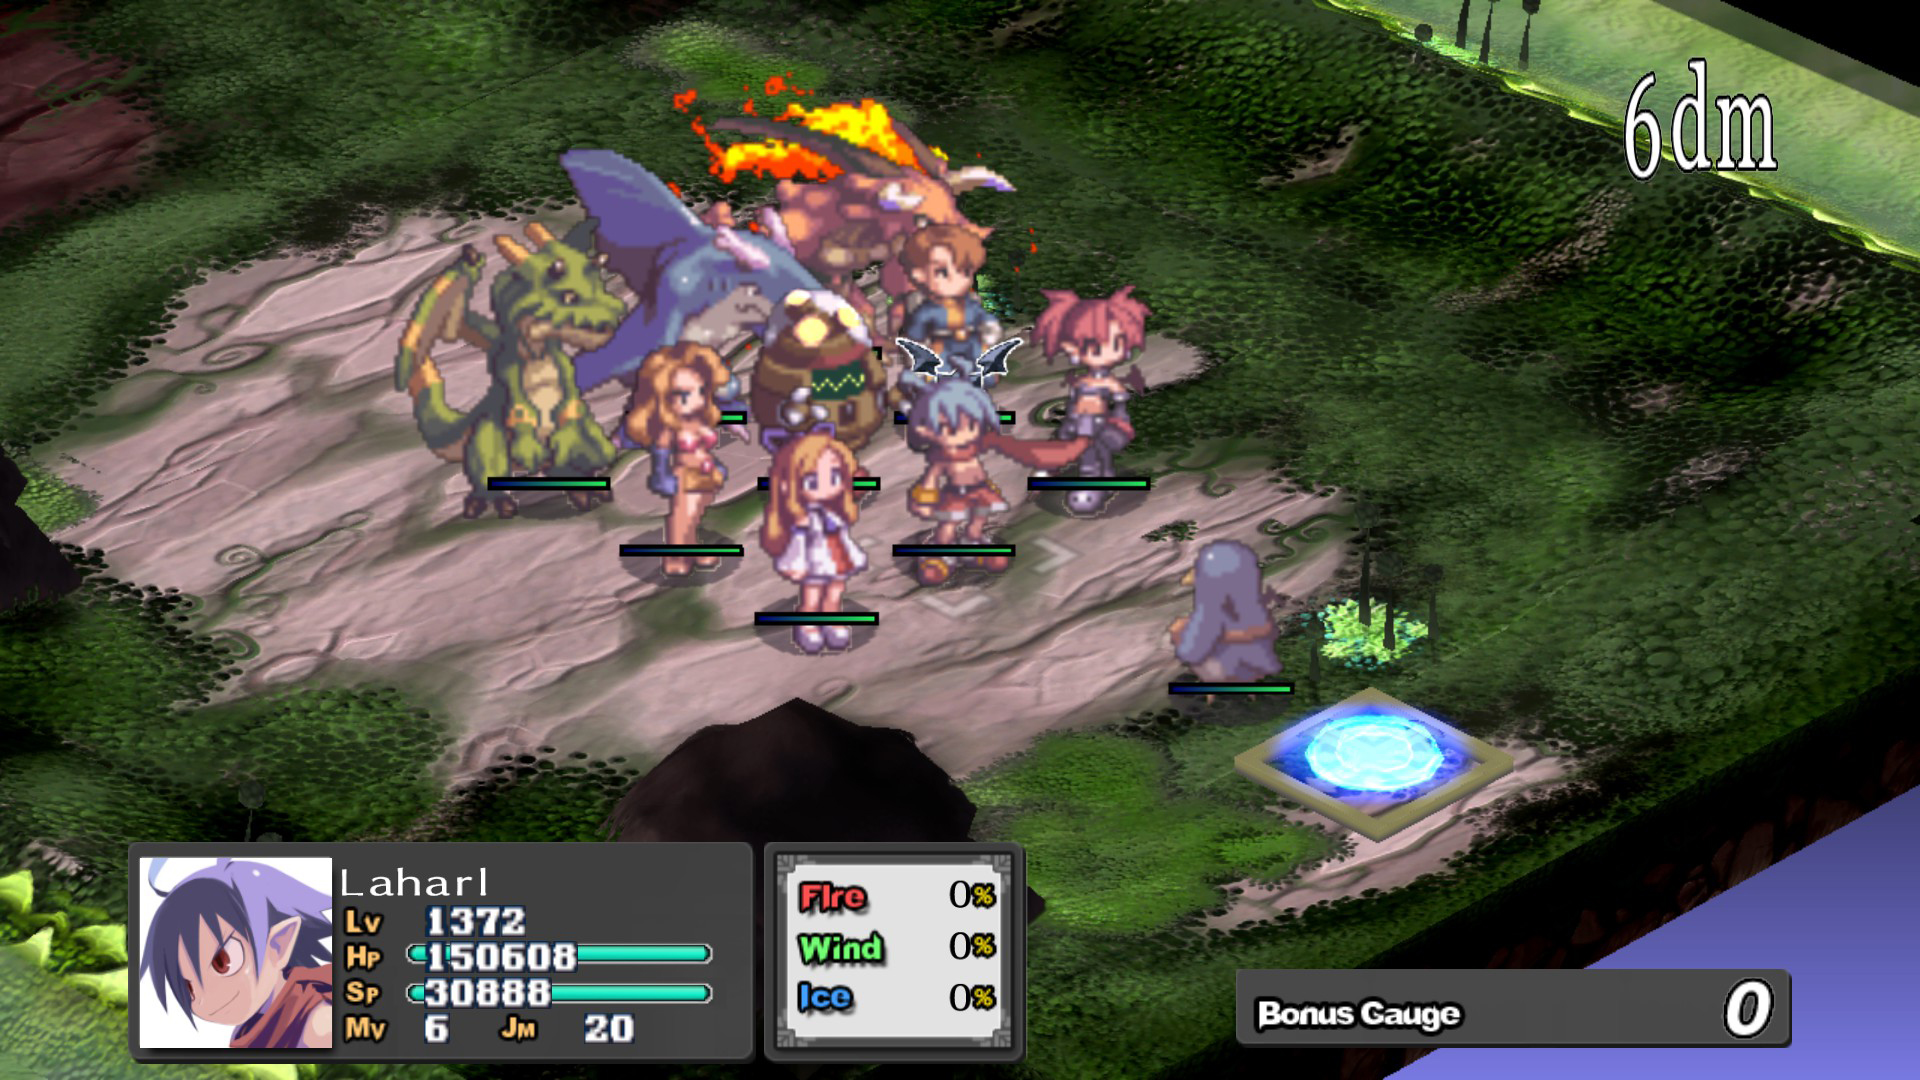 Disgaea released on Steam | rpg clowndex > doesn't honk to your normies